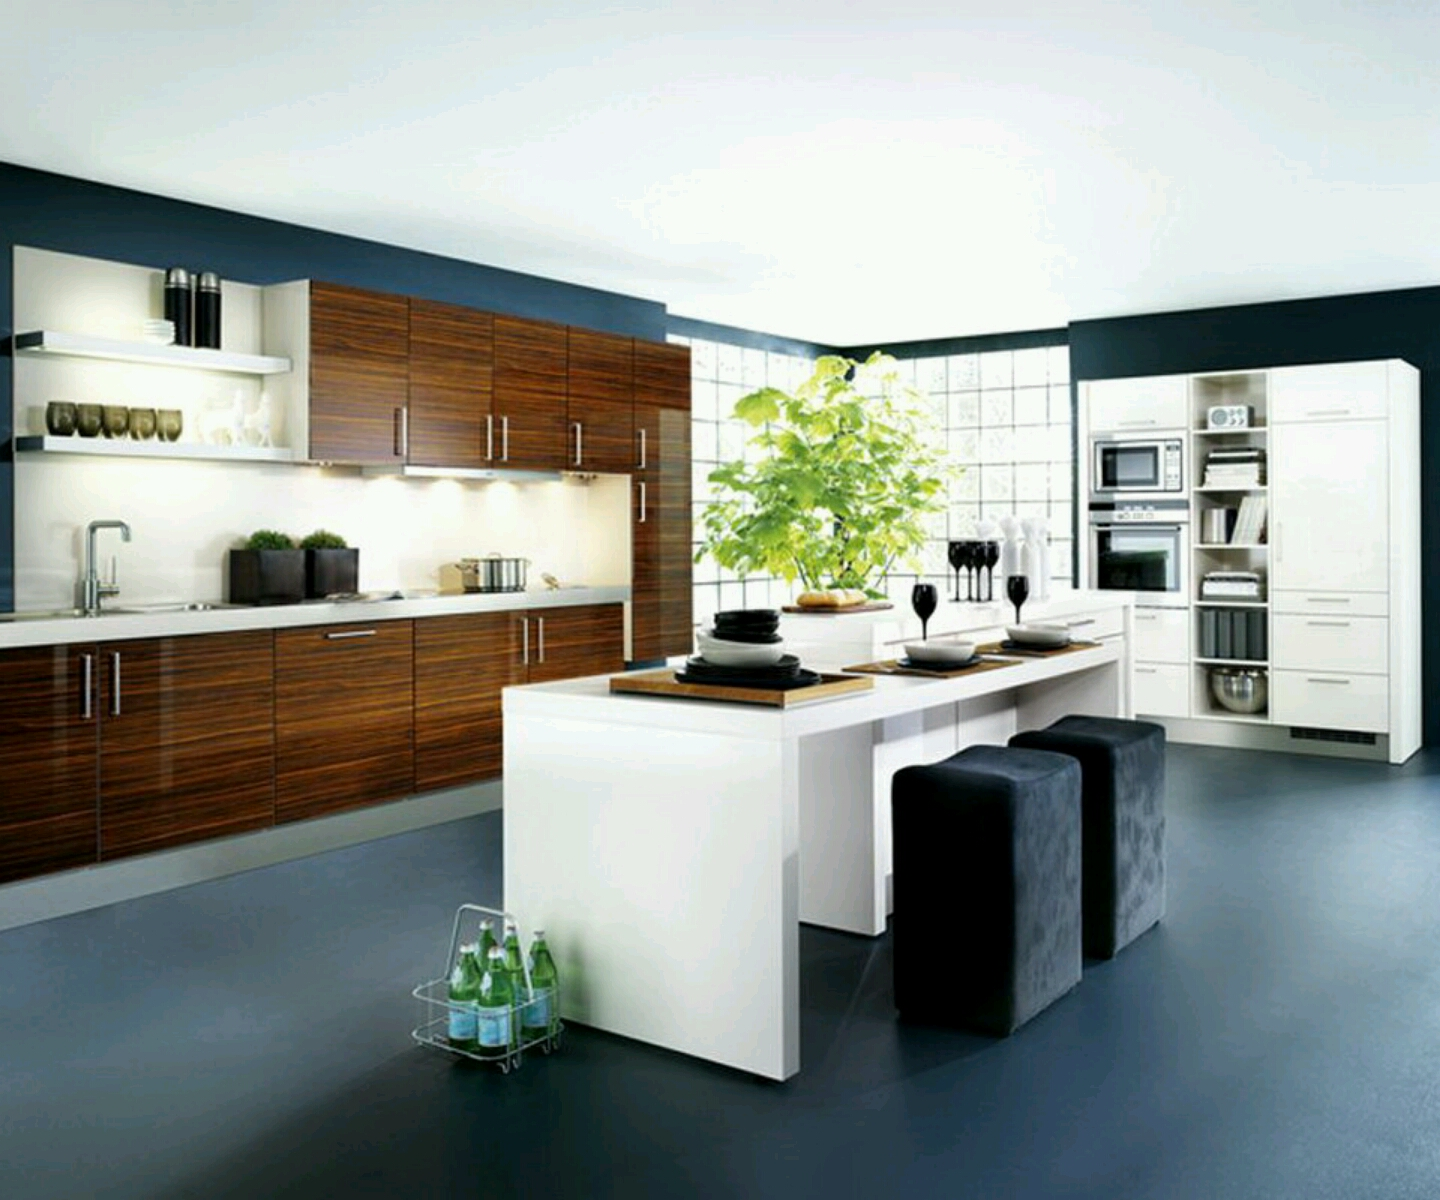 new home designs latest kitchen cabinets designs modern On modern kitchen cupboards designs pictures